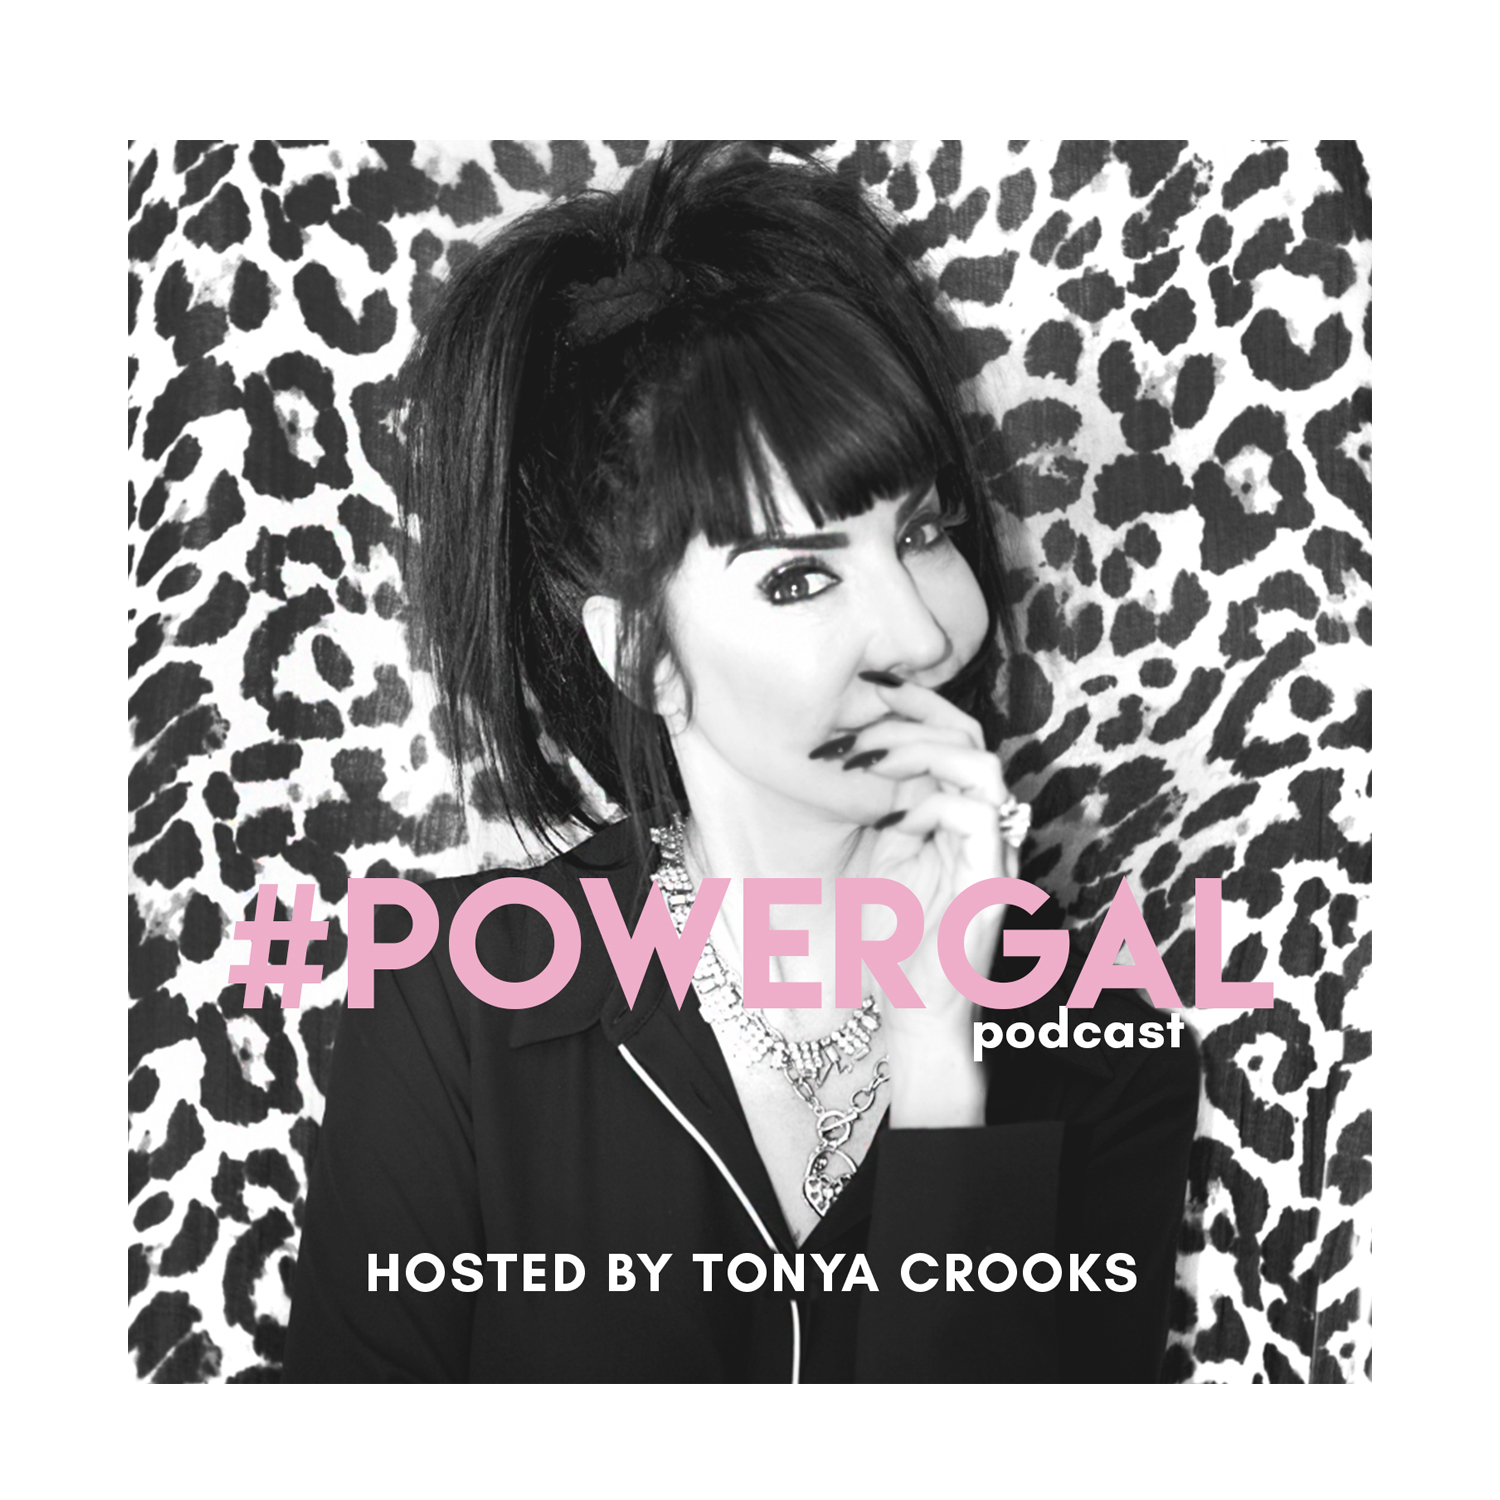 Grab your headphones doll. It's coming soon! - Powerful advice from powerful gals.